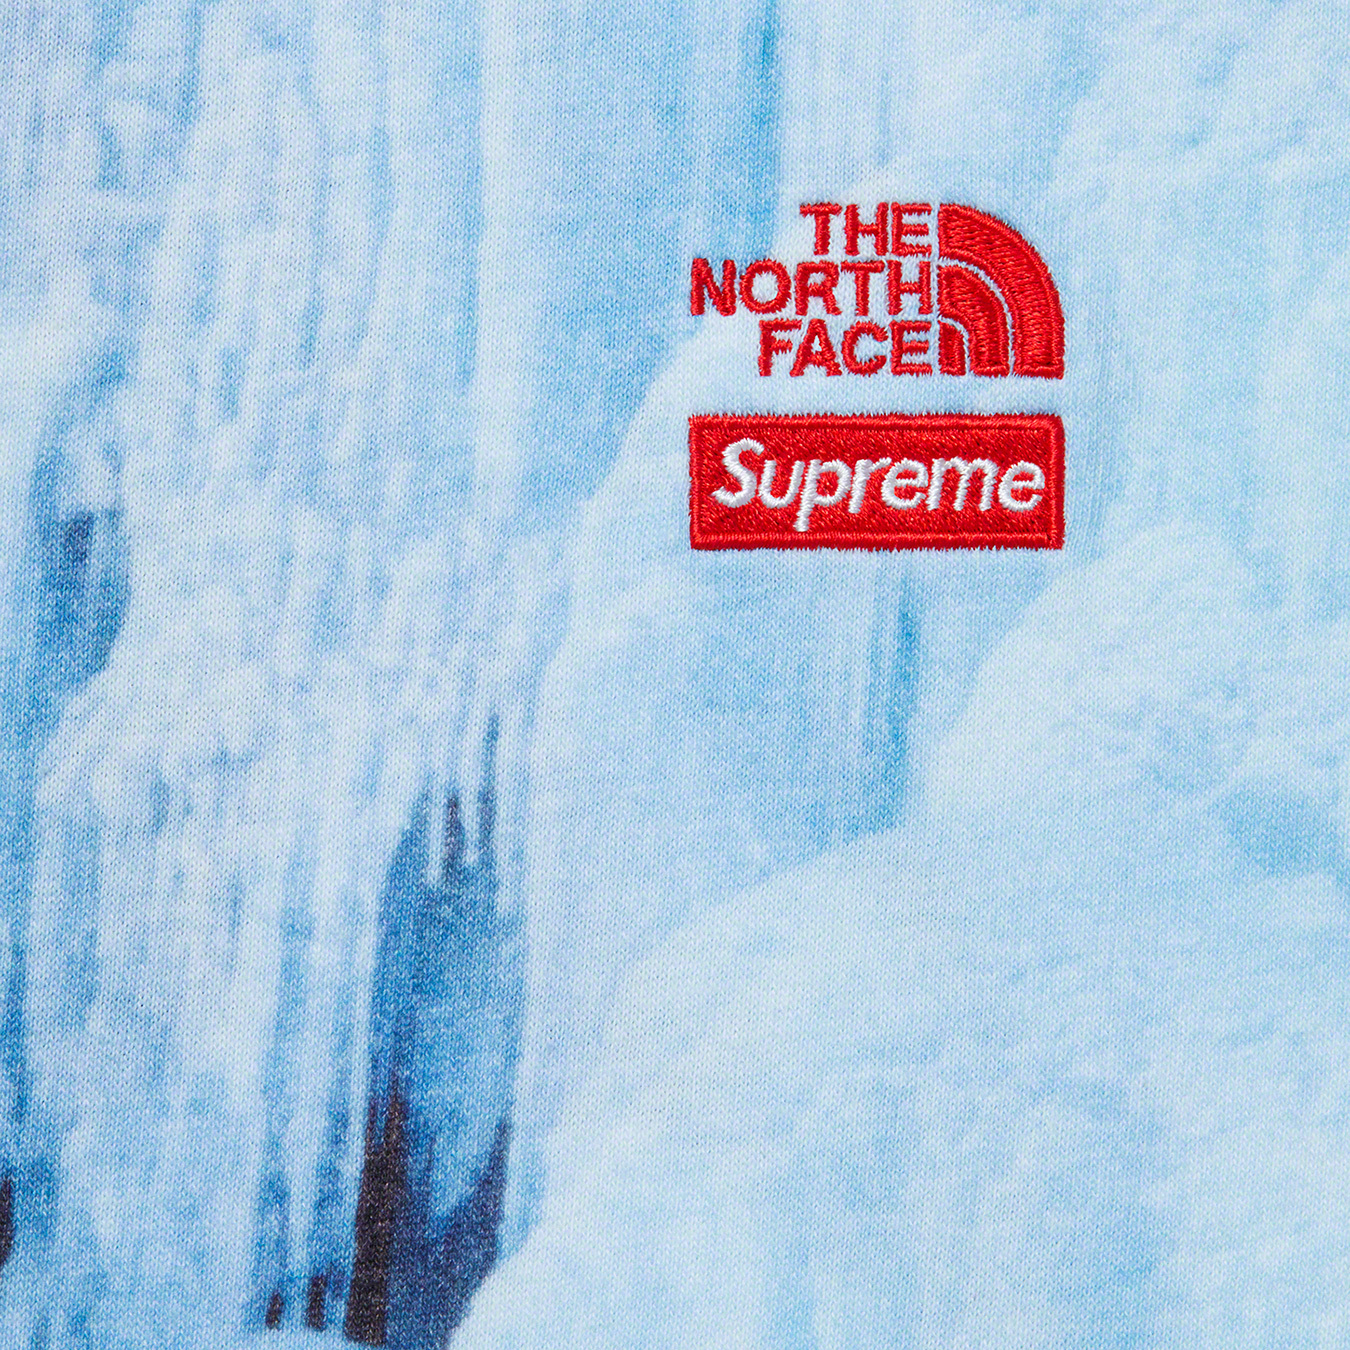 supreme-the-north-face-studded-21ss-collection-release-20210327-week5-ice-climb-tee